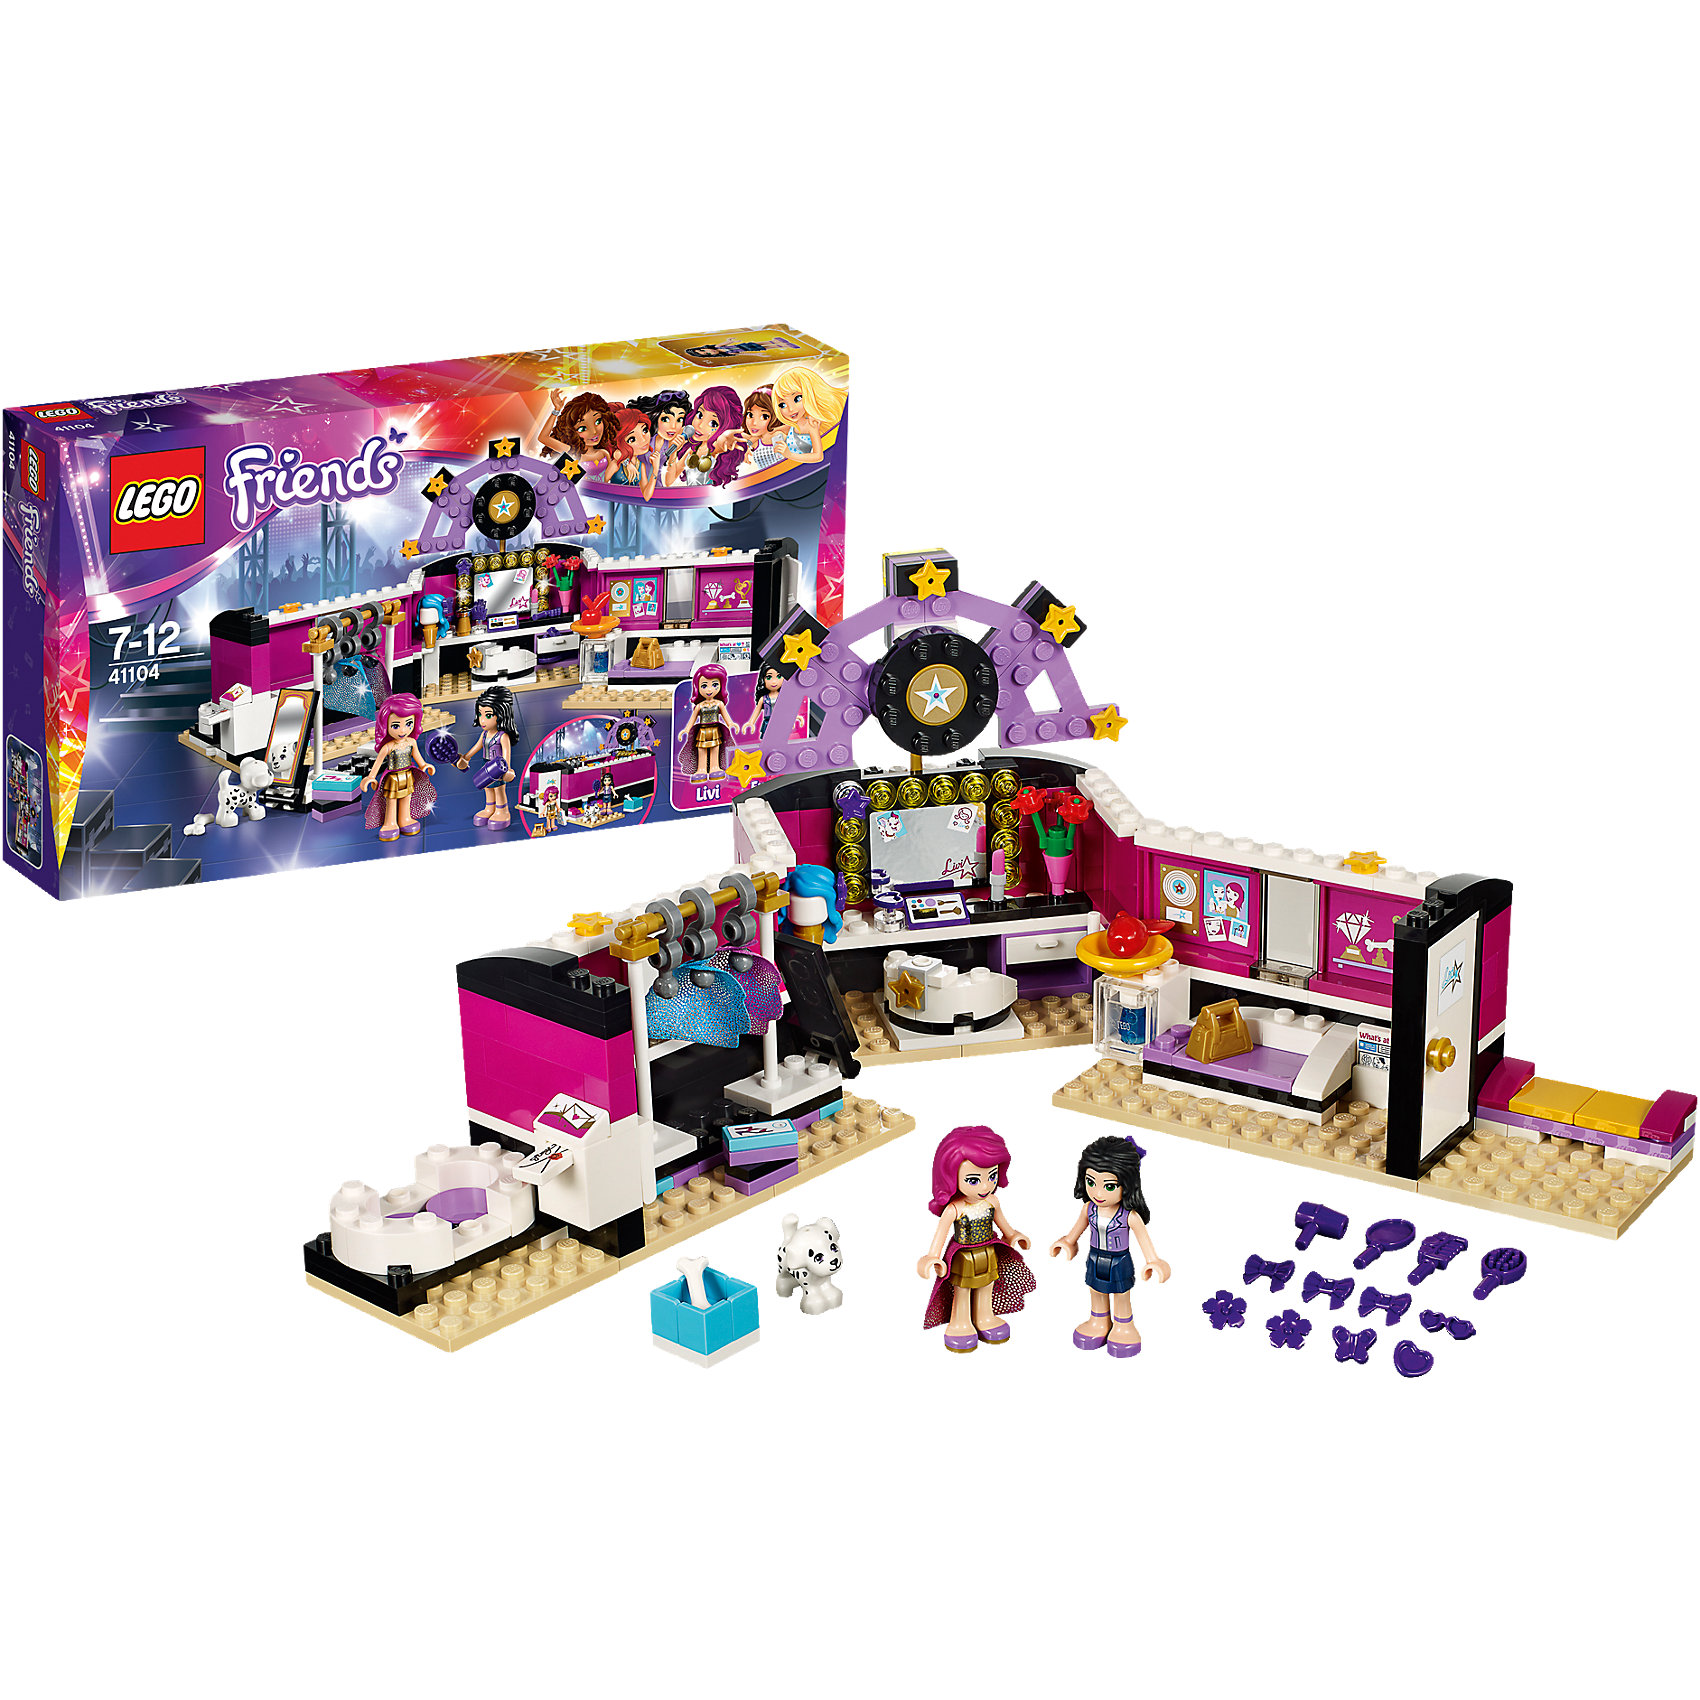 LEGO LEGO Friends 41104: Поп звезда: гримерная